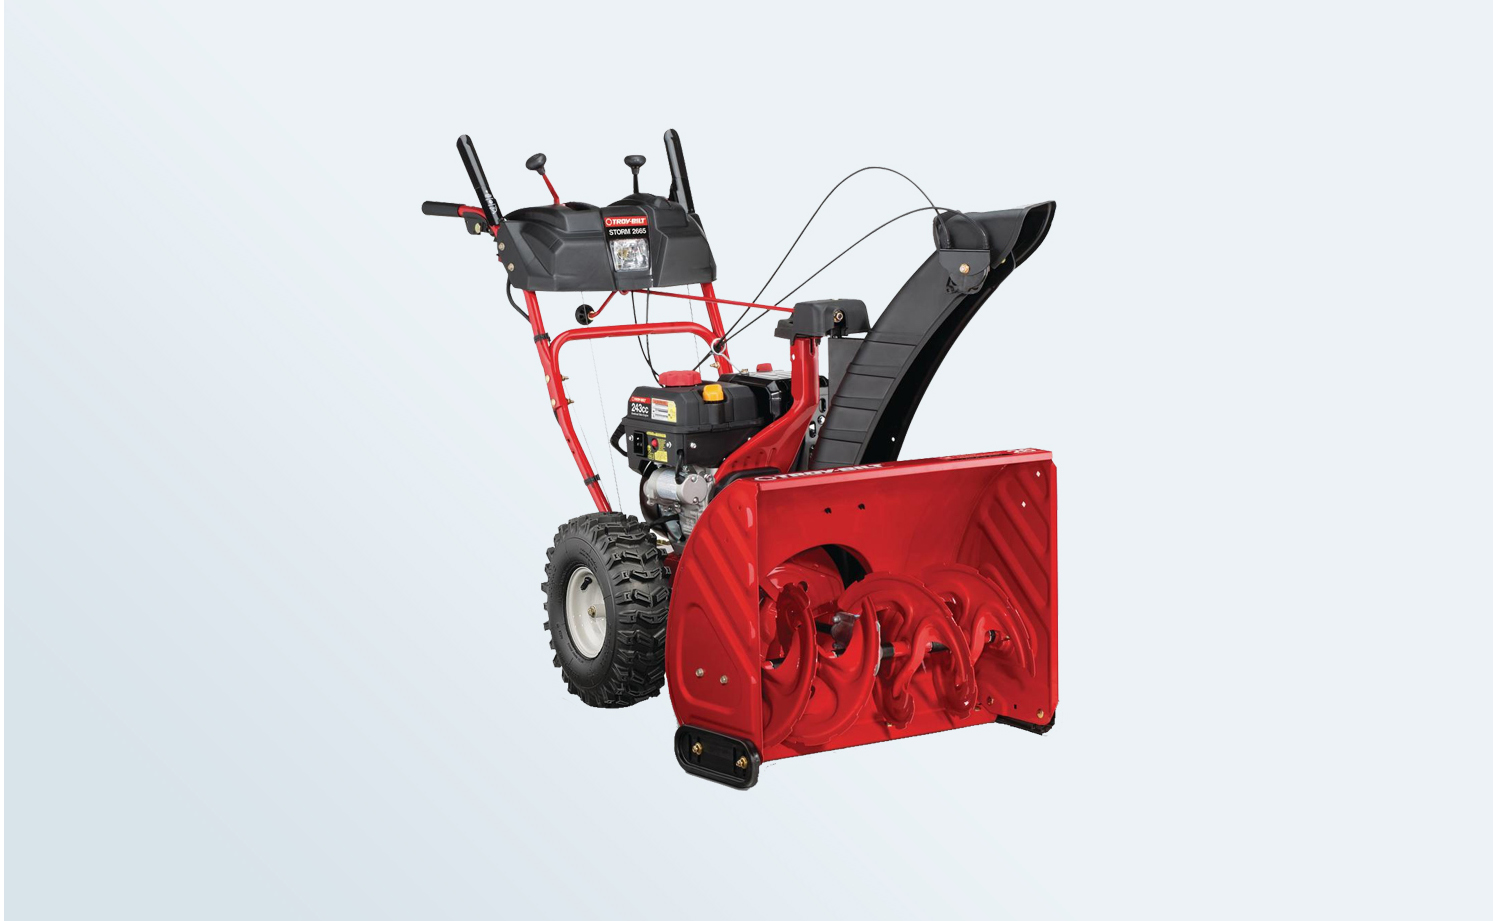 Best Snow Blowers 2019 - Gas and Electric Snowblower Reviews